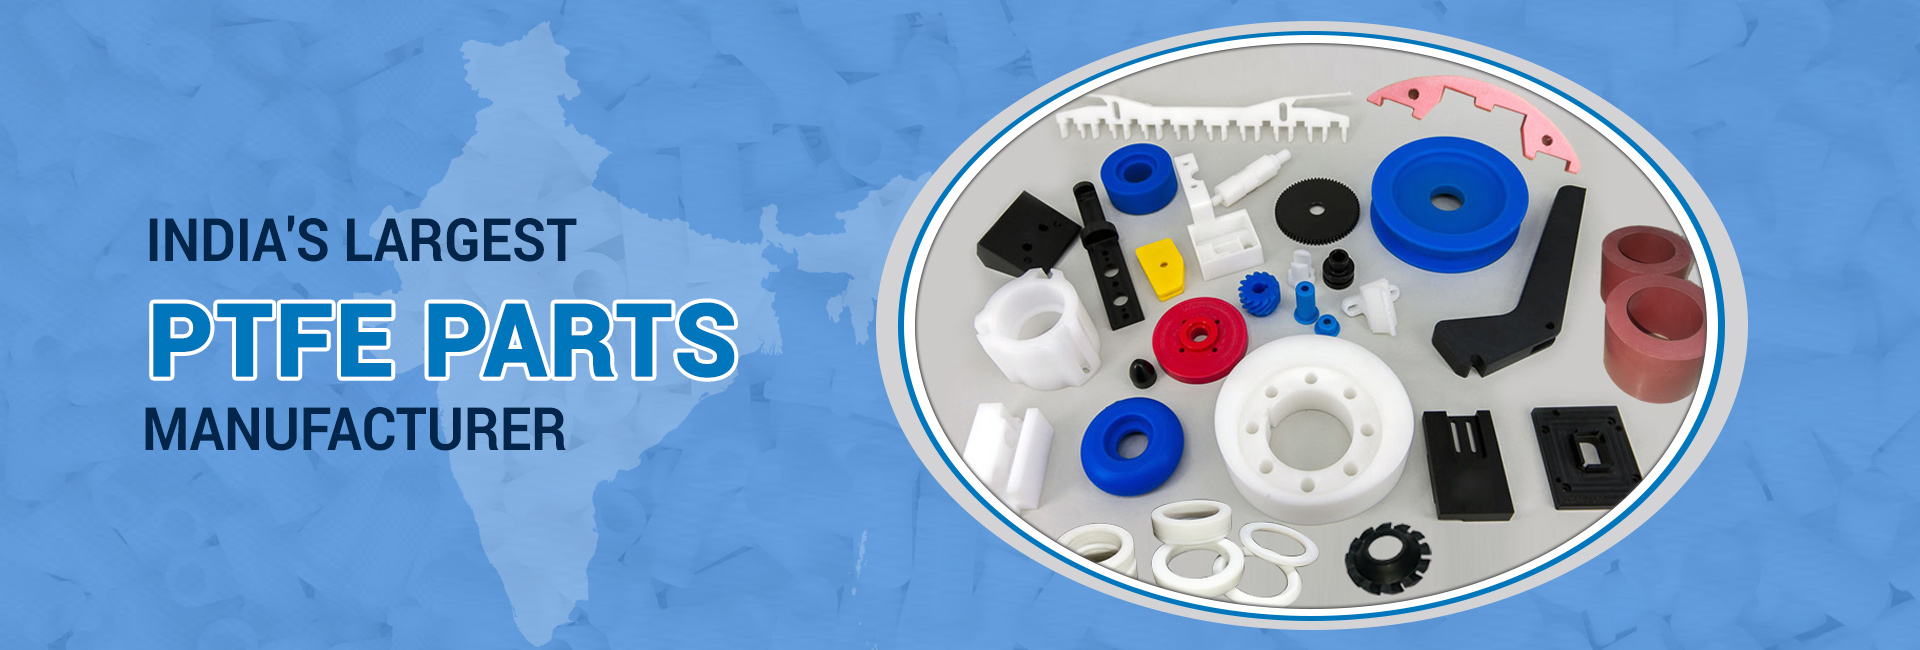 Ptfe Part Manufacturer & Supplier In india